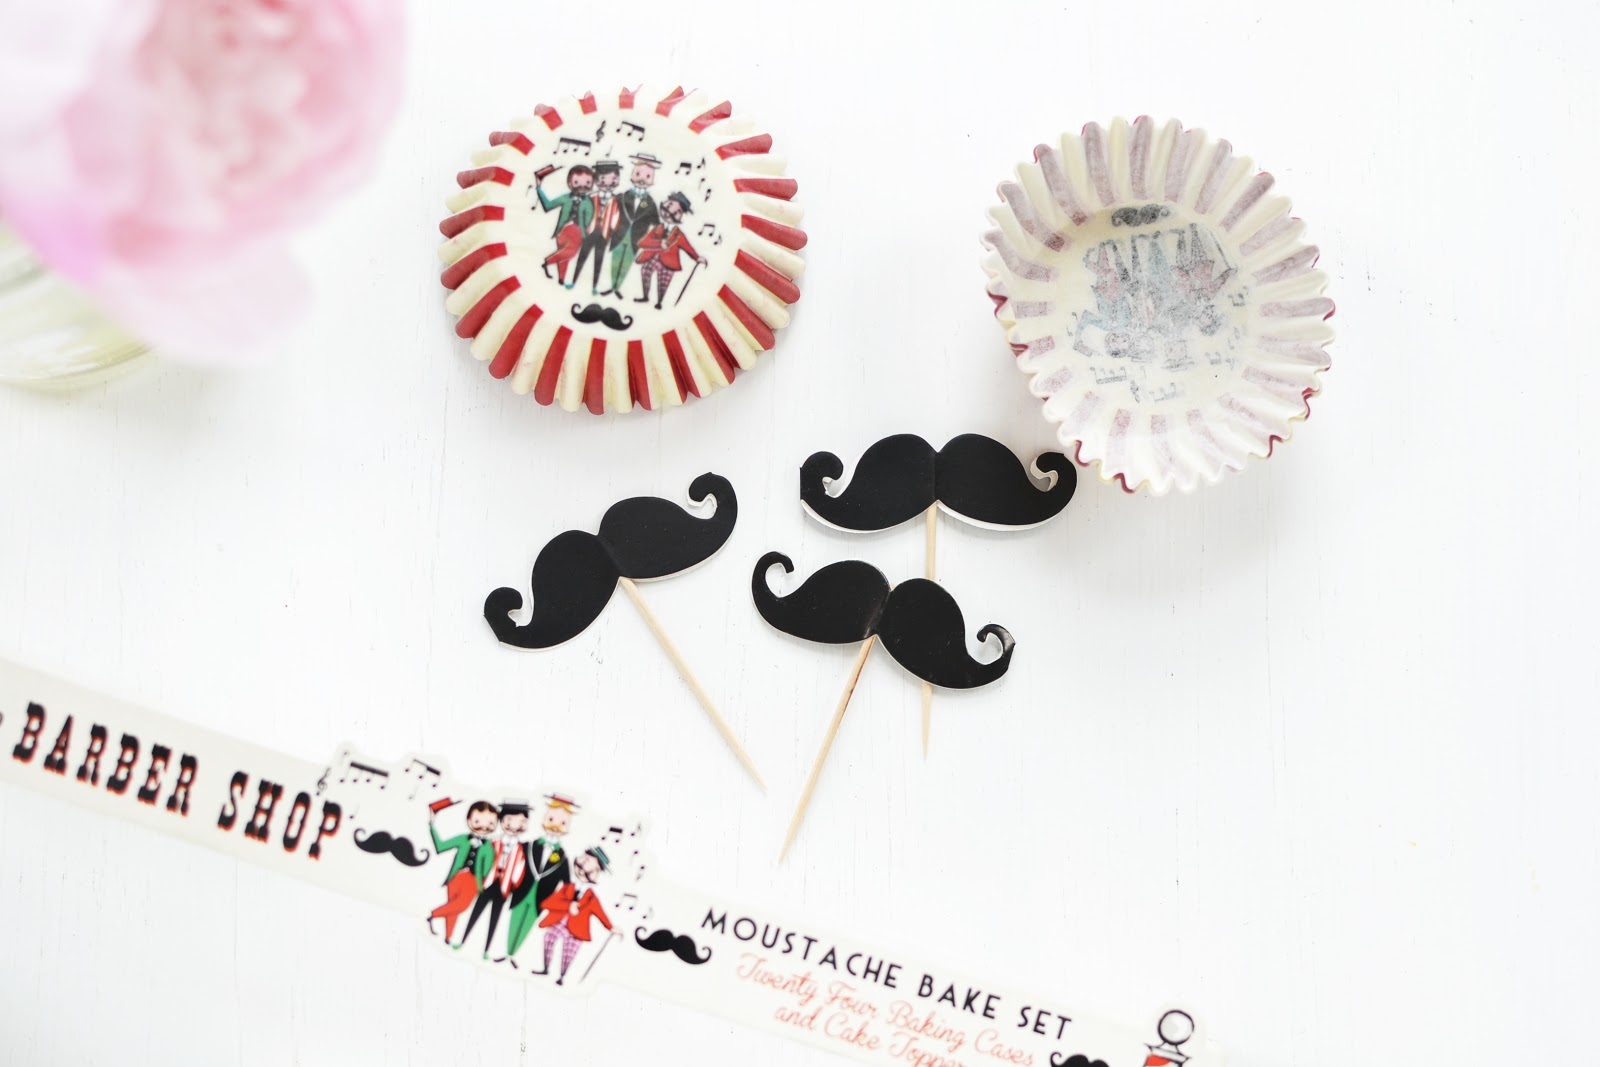 barber shop moustache cake toppers